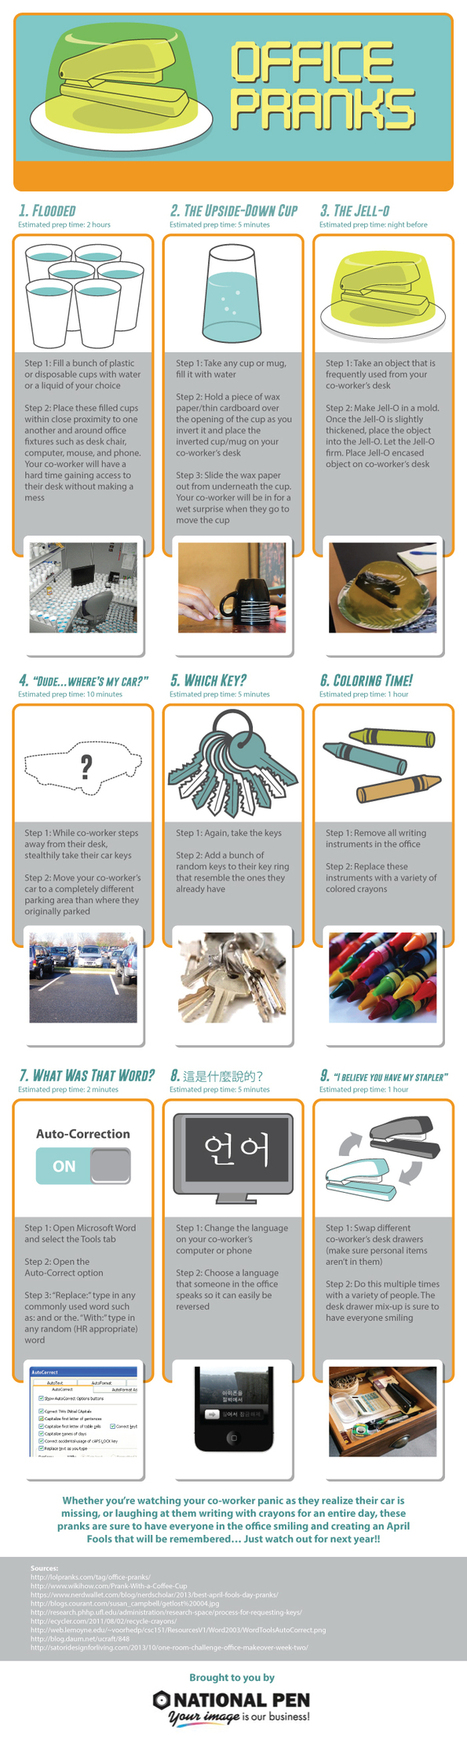 Top Office Pranks for April Fool's Day - Best Infographics | Digital-News on Scoop.it today | Scoop.it